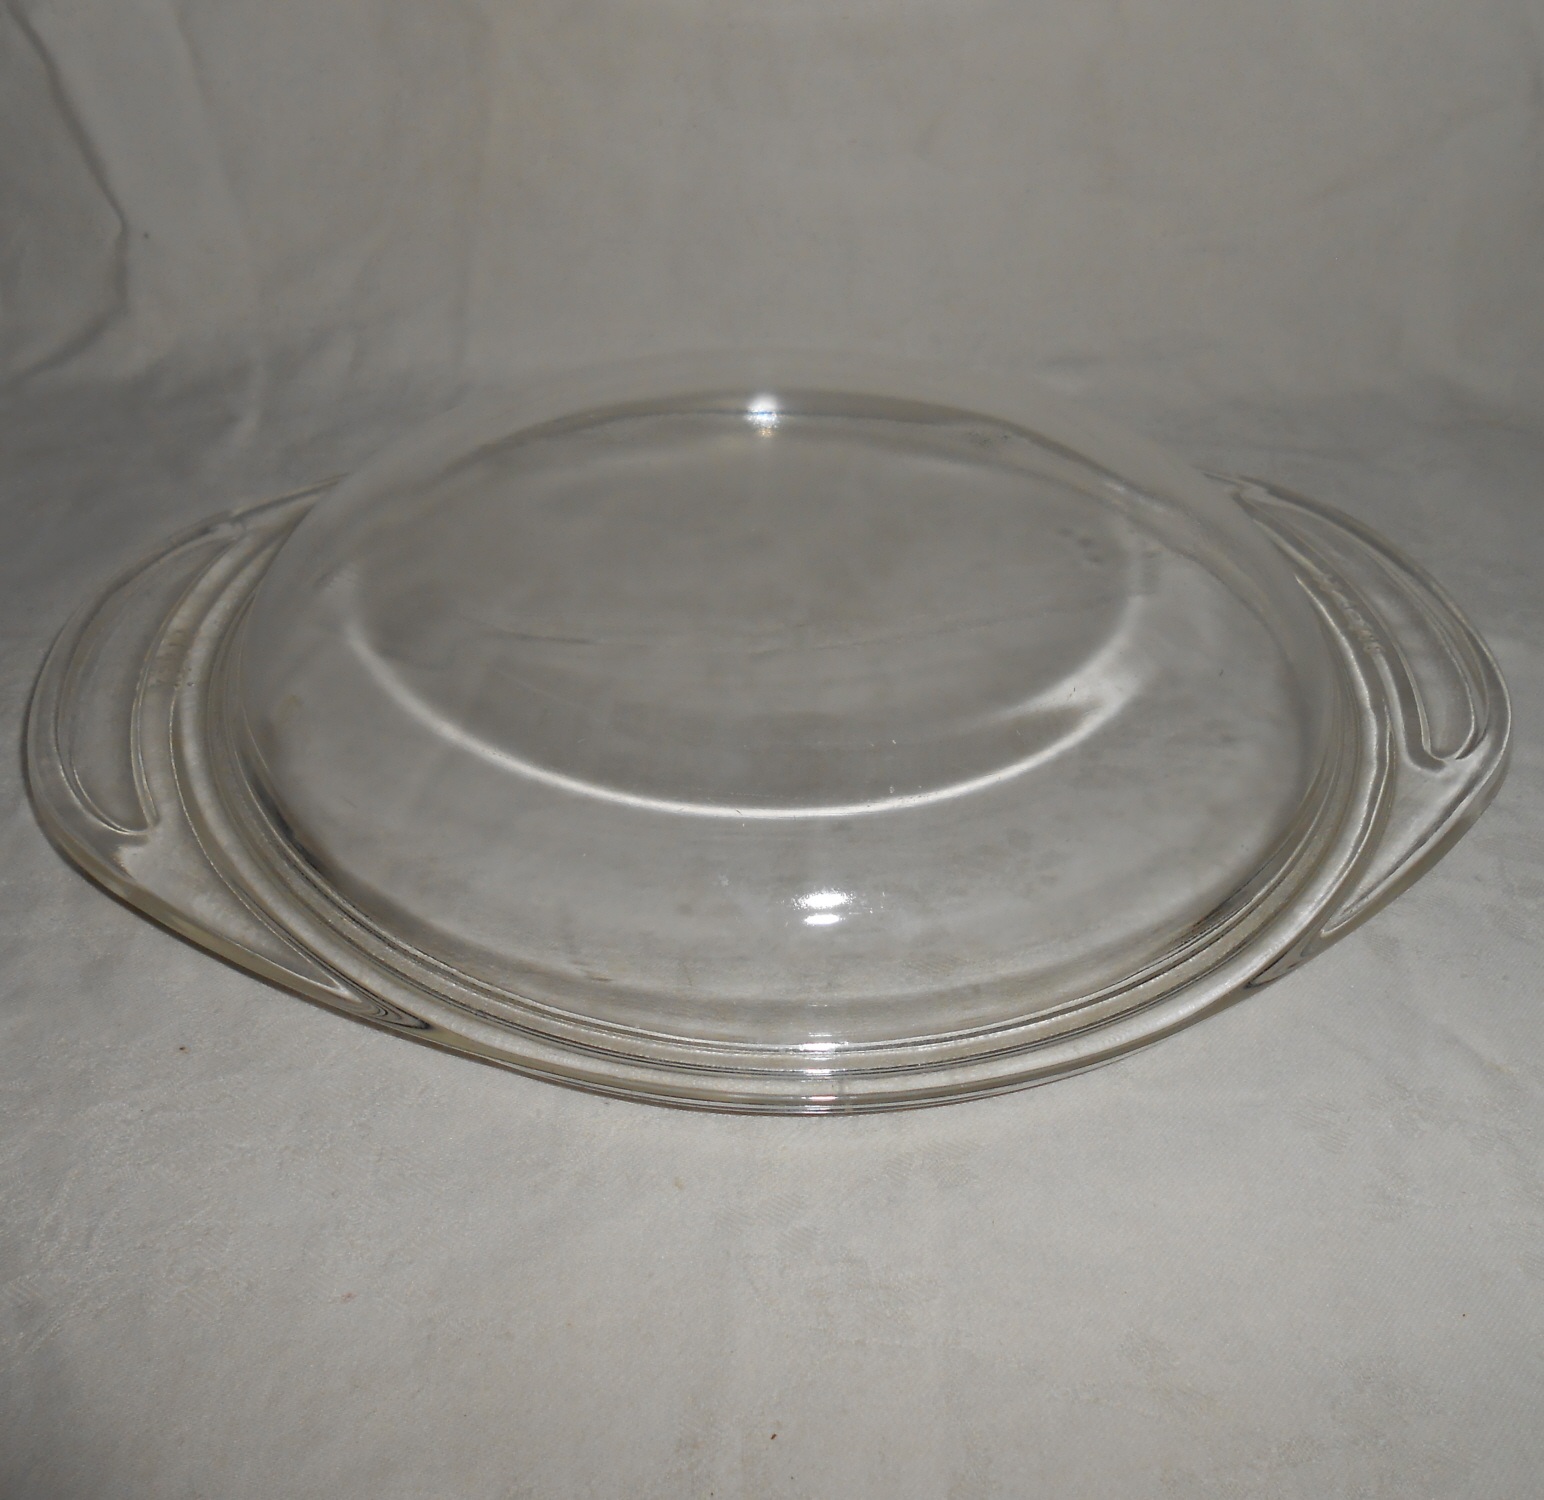 pyrex replacement clear glass - photo #20